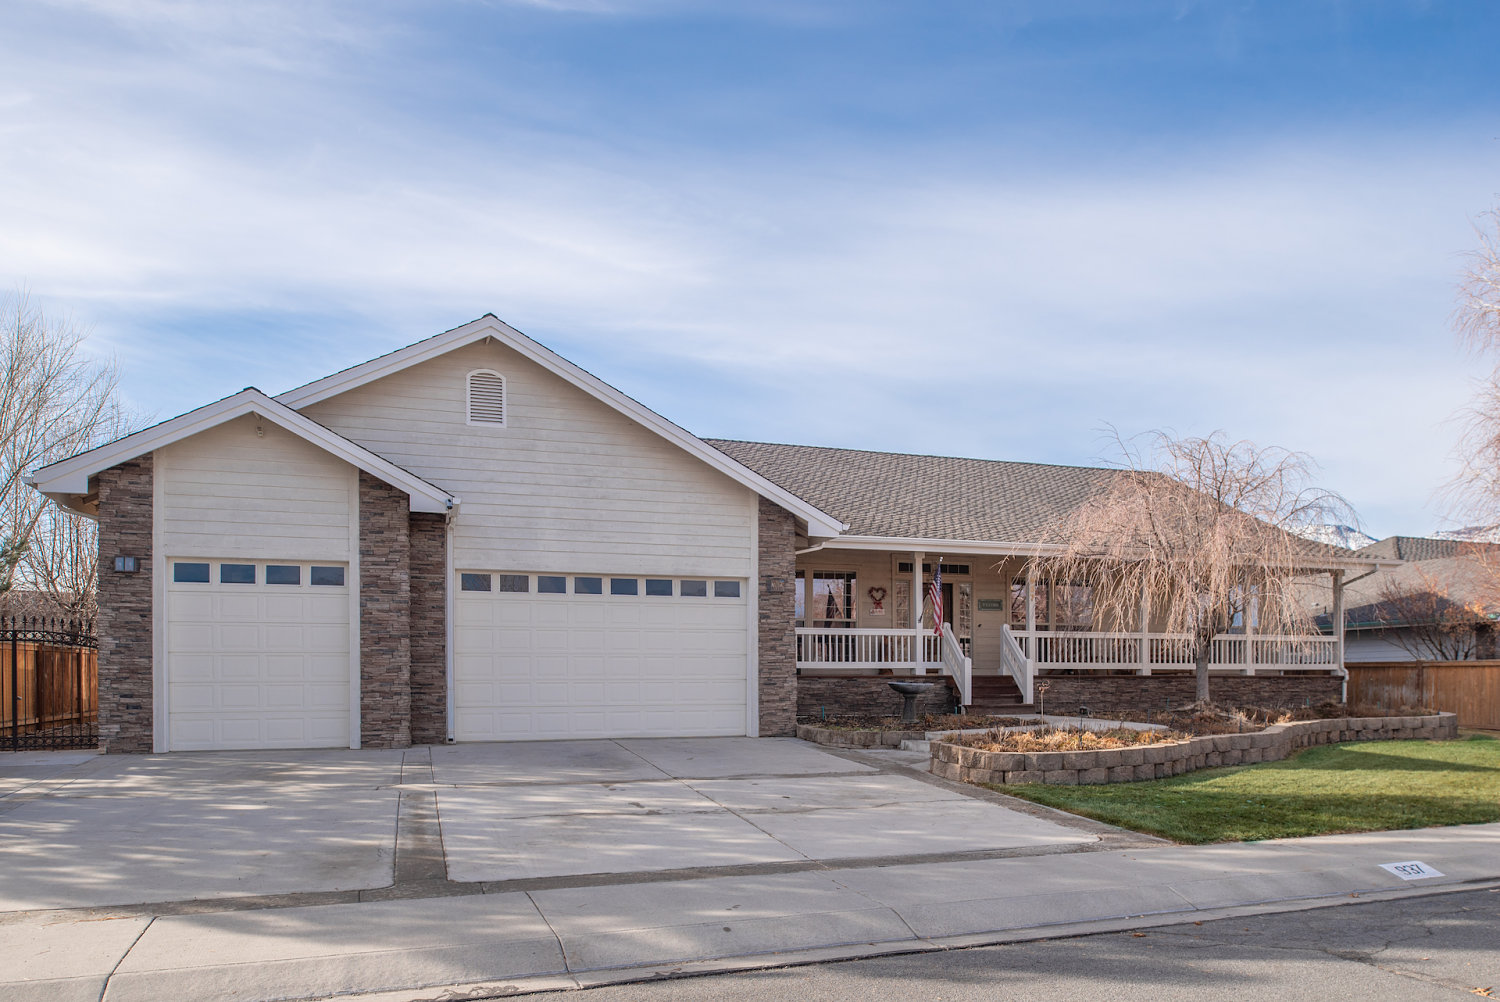 937 Wintergreen Drive - sold May 22, 2019 for $625,000